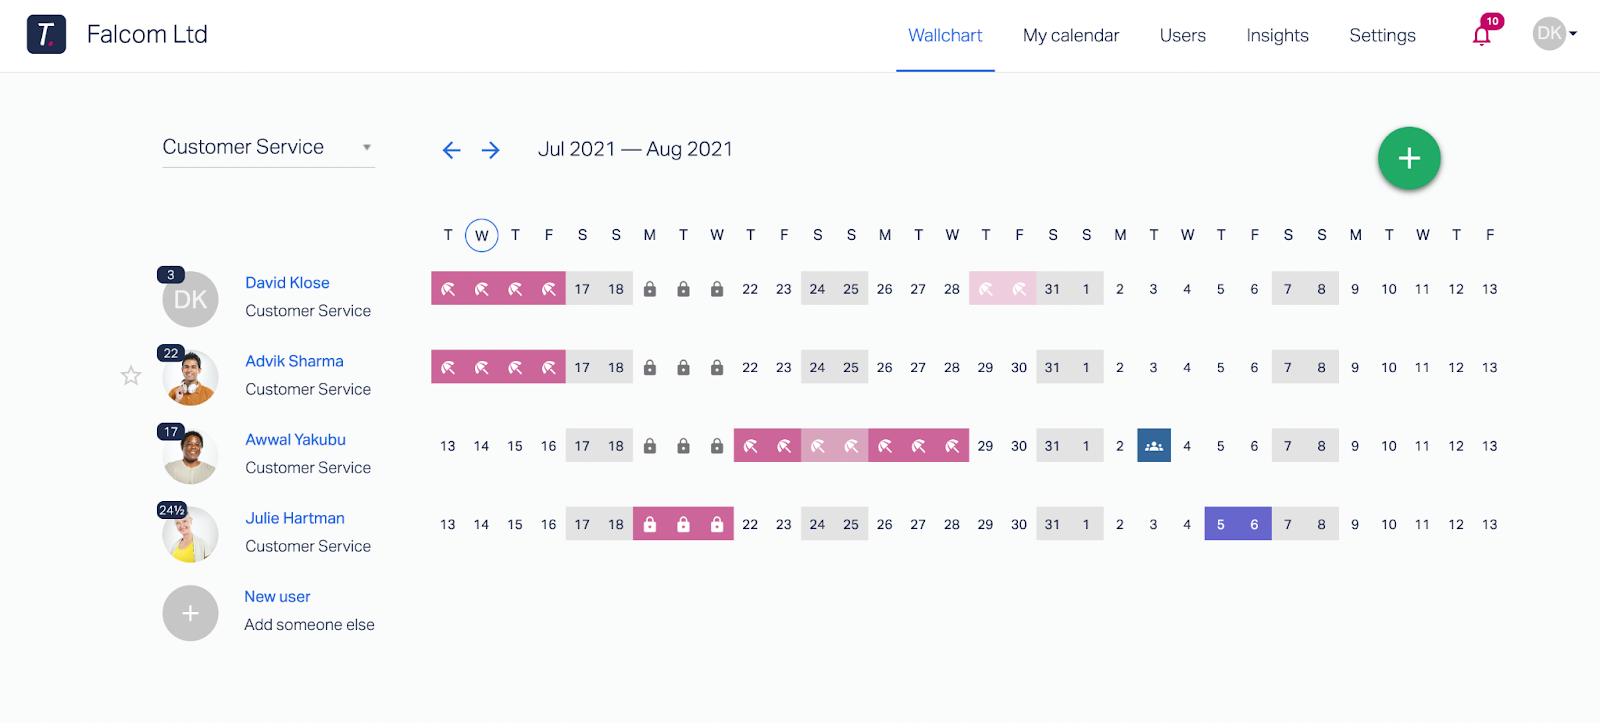 A preview of what a Wallchart looks like within Timetastic.